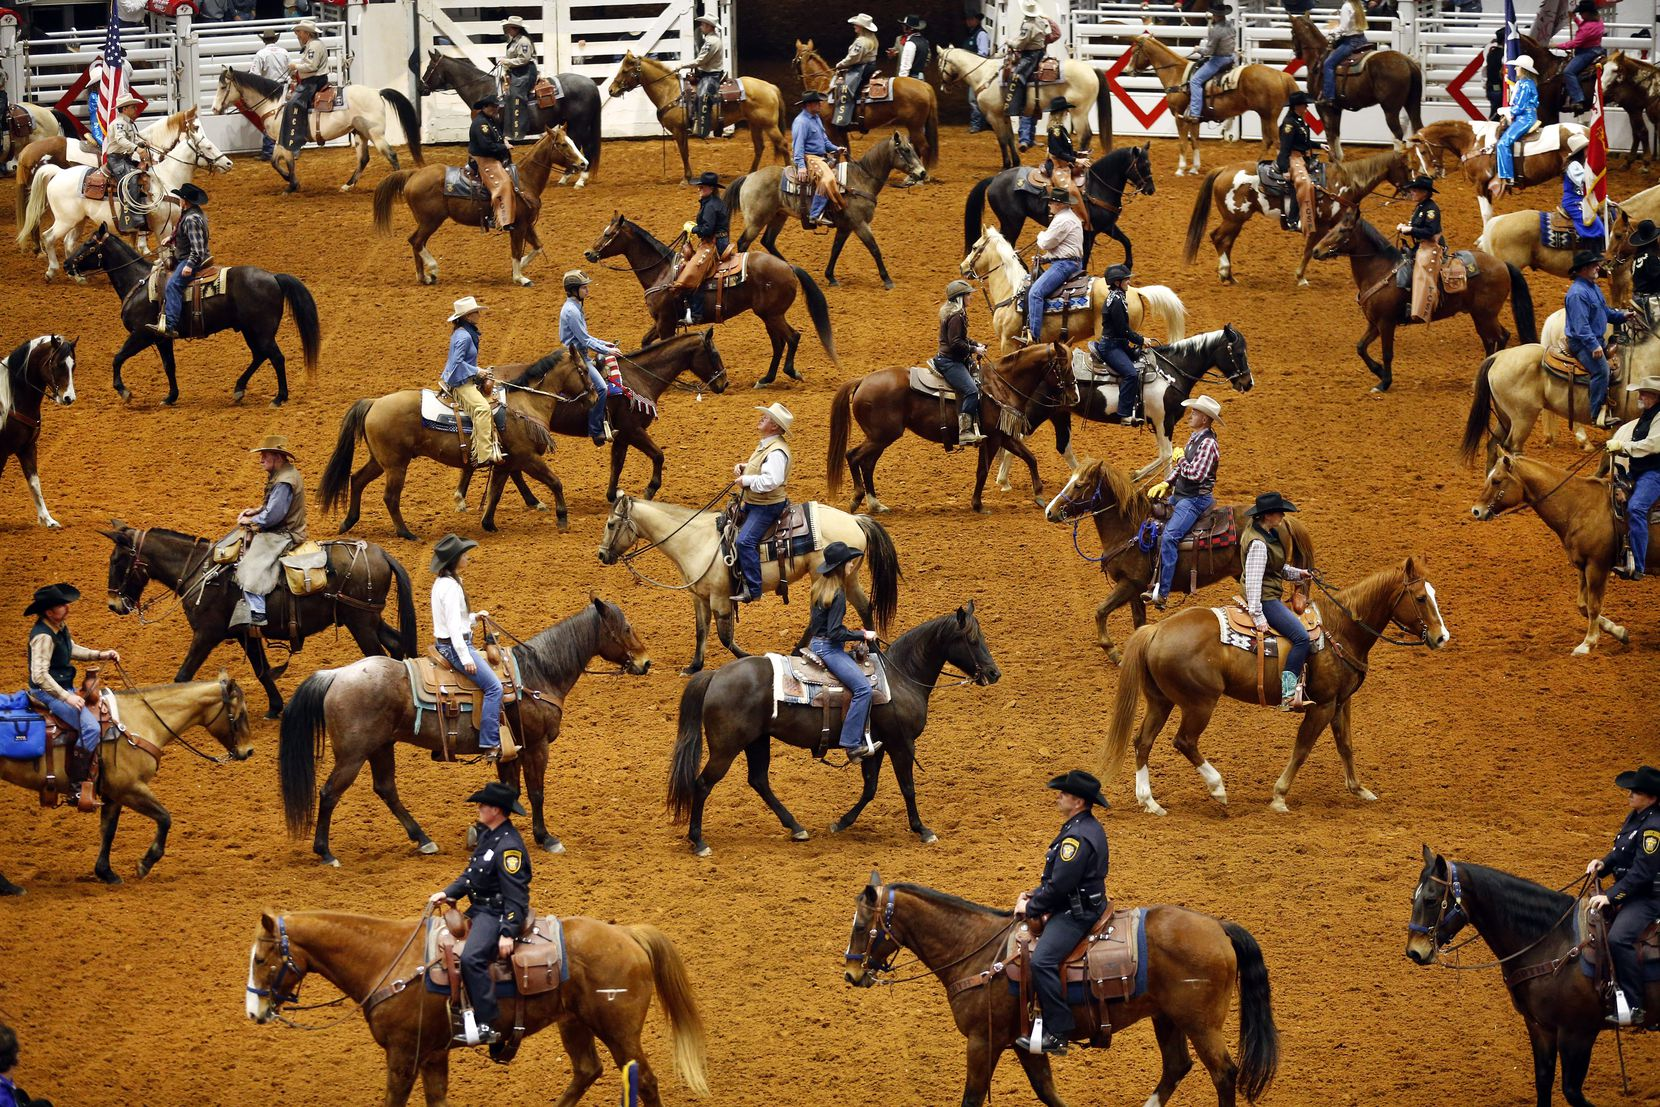 Stock Show officials, dignitaries, and participants on horseback form a serpentine line during the Grand Entry on Feb. 1 at Will Rogers Memorial Coliseum. The procession, which kicks off the Stock Show's PRCA rodeo, is a longtime tradition of the rodeo, dating back to the beginning in 1918.